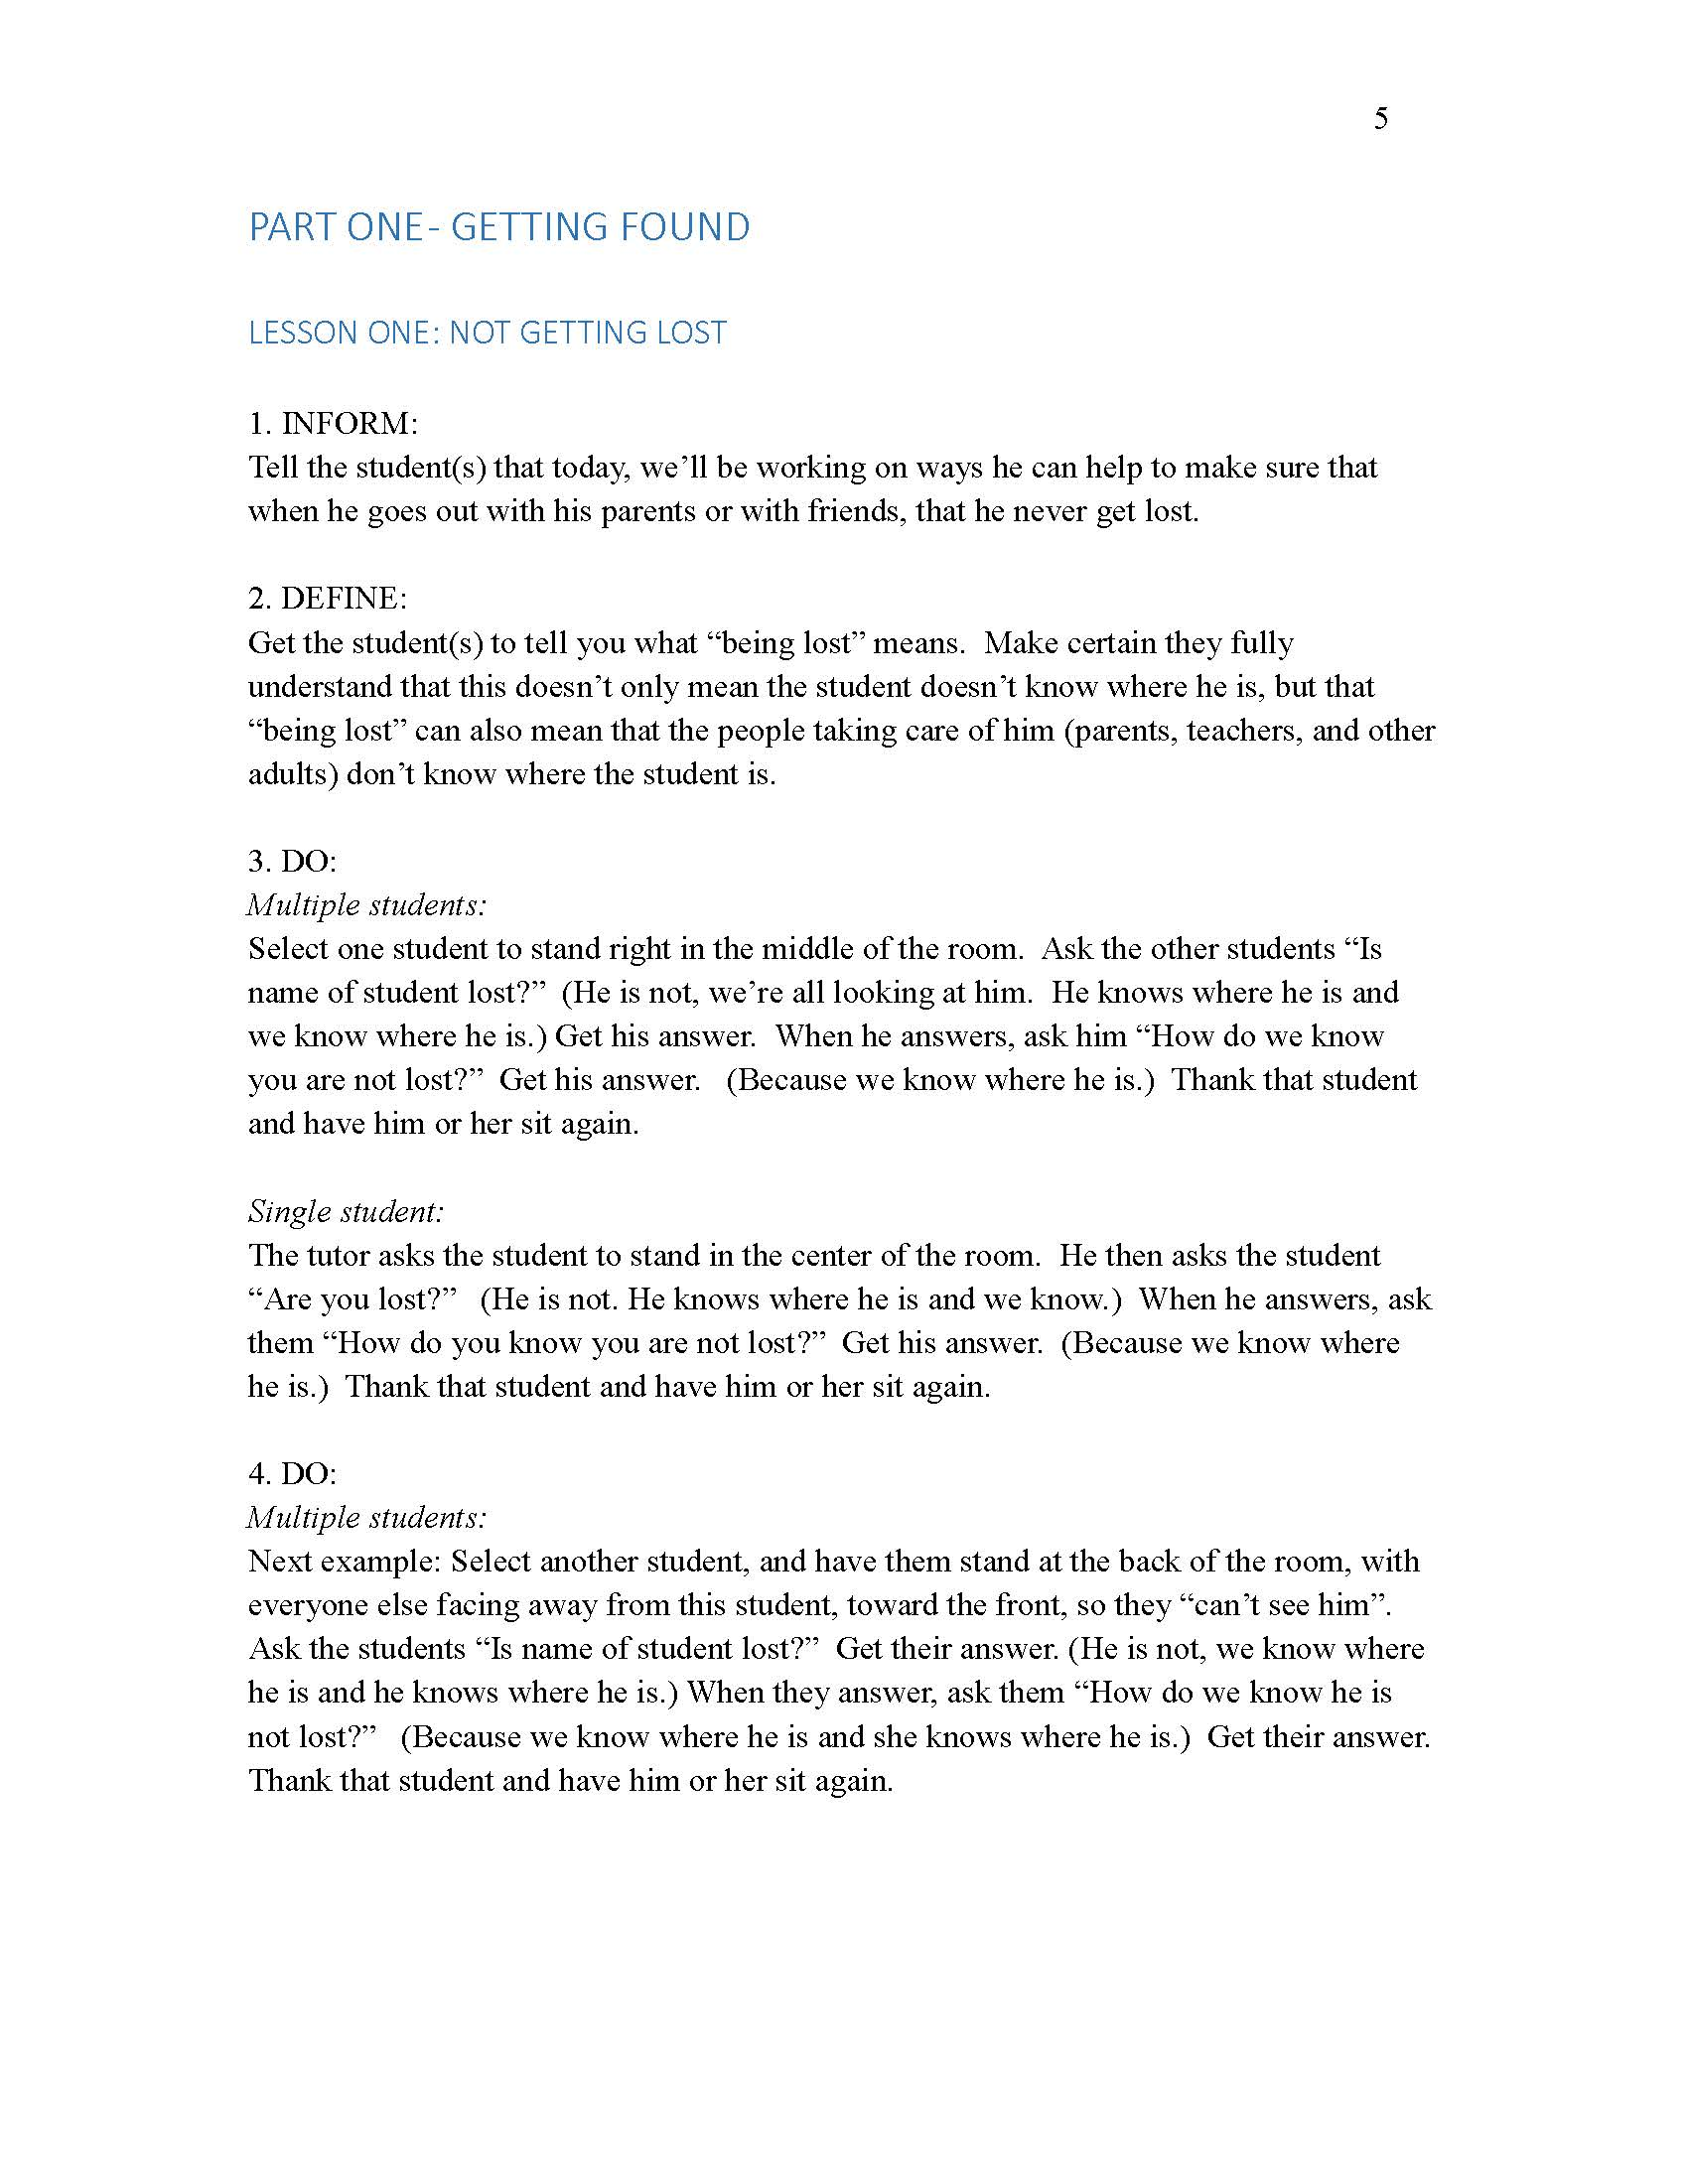 Sample Pages Step 1 Study & Life Skills 1 - Safety First 1_Page_06.jpg